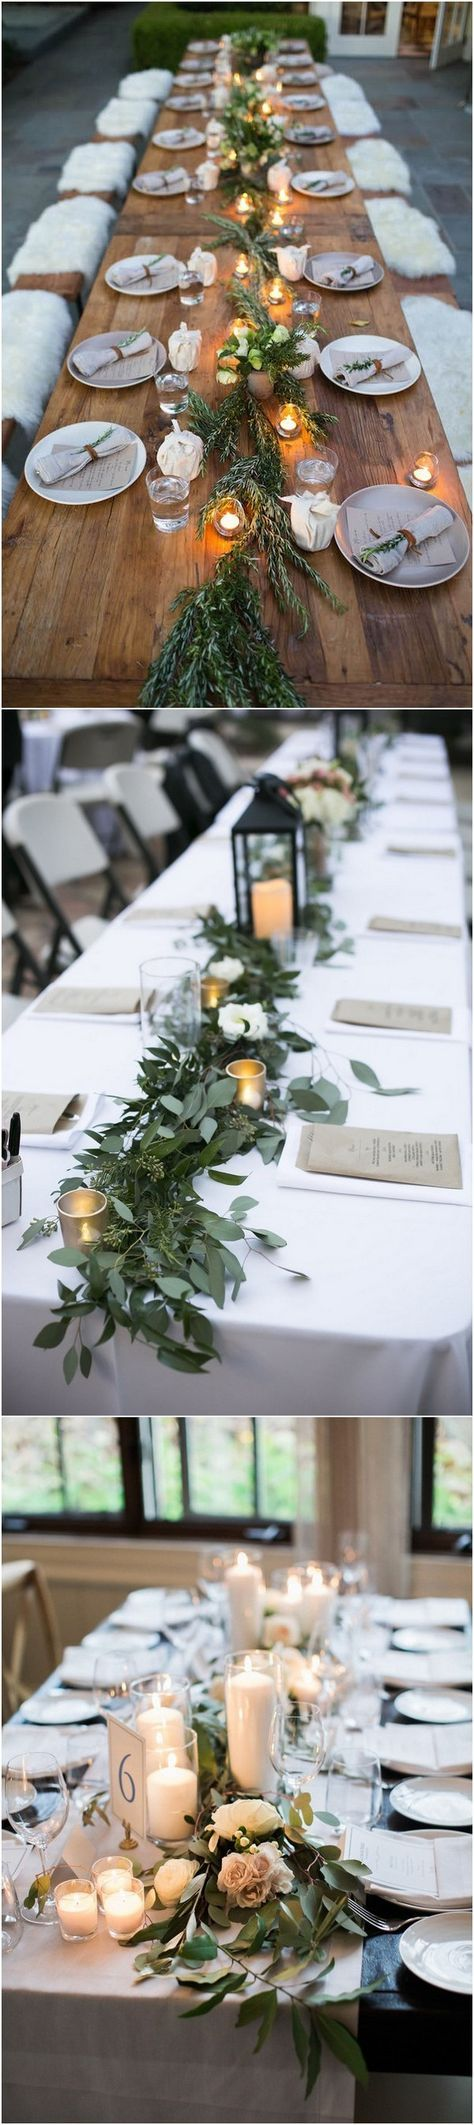 rustic wedding table decoration ideas with candles